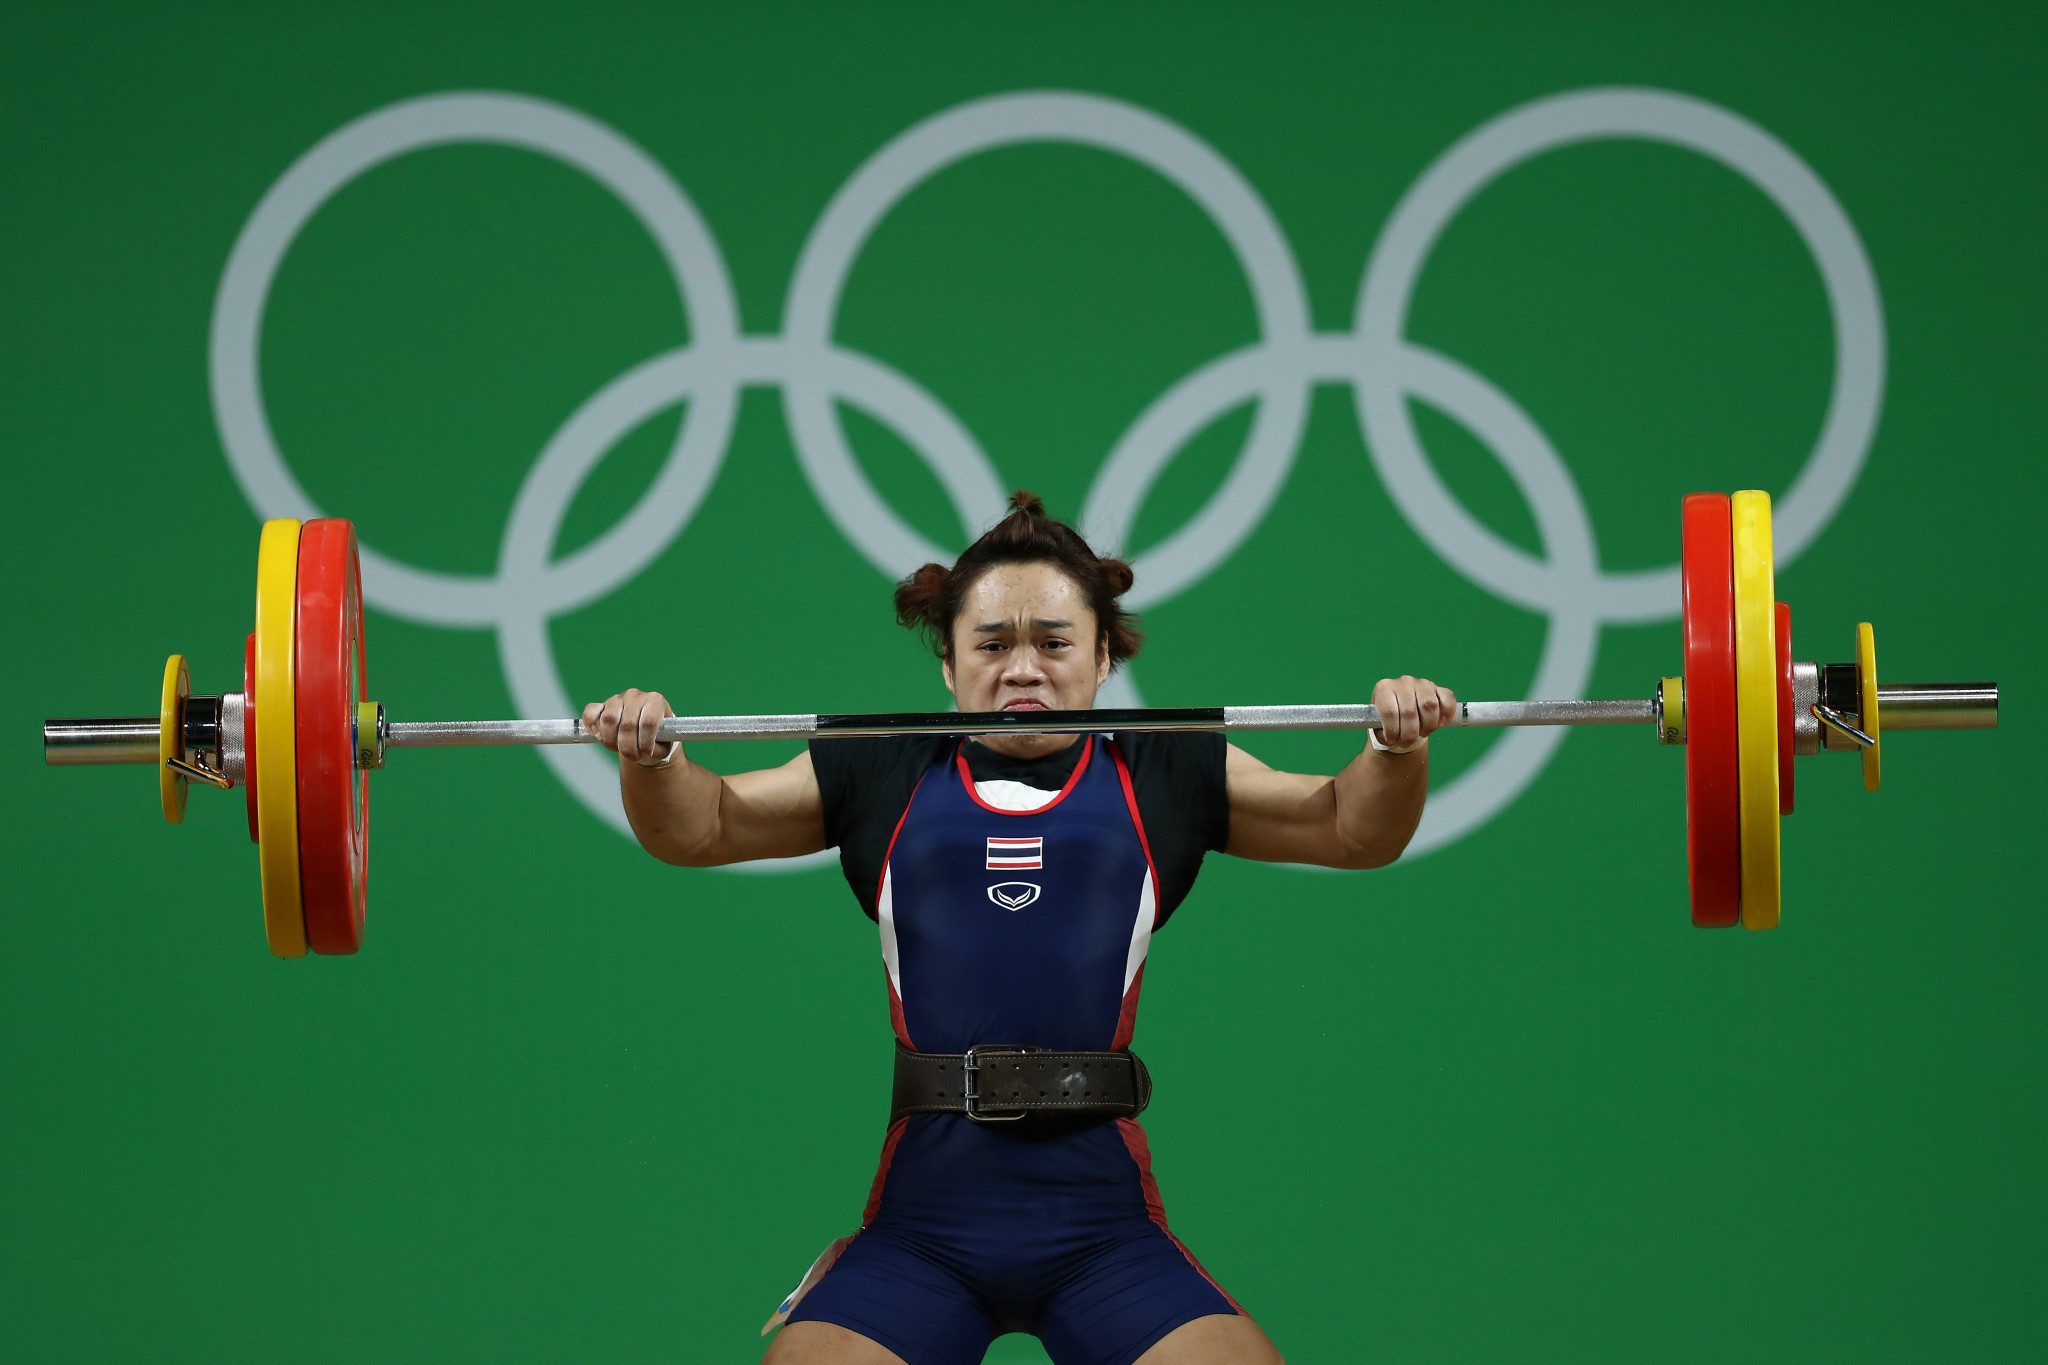 Rio 2016 Olympic gold medallist Sukanya Srisurat was among the nine members of Thailand's team who tested positive at last year's IWF World Championships in Turkmenistan's capital Ashgabat ©Getty Images